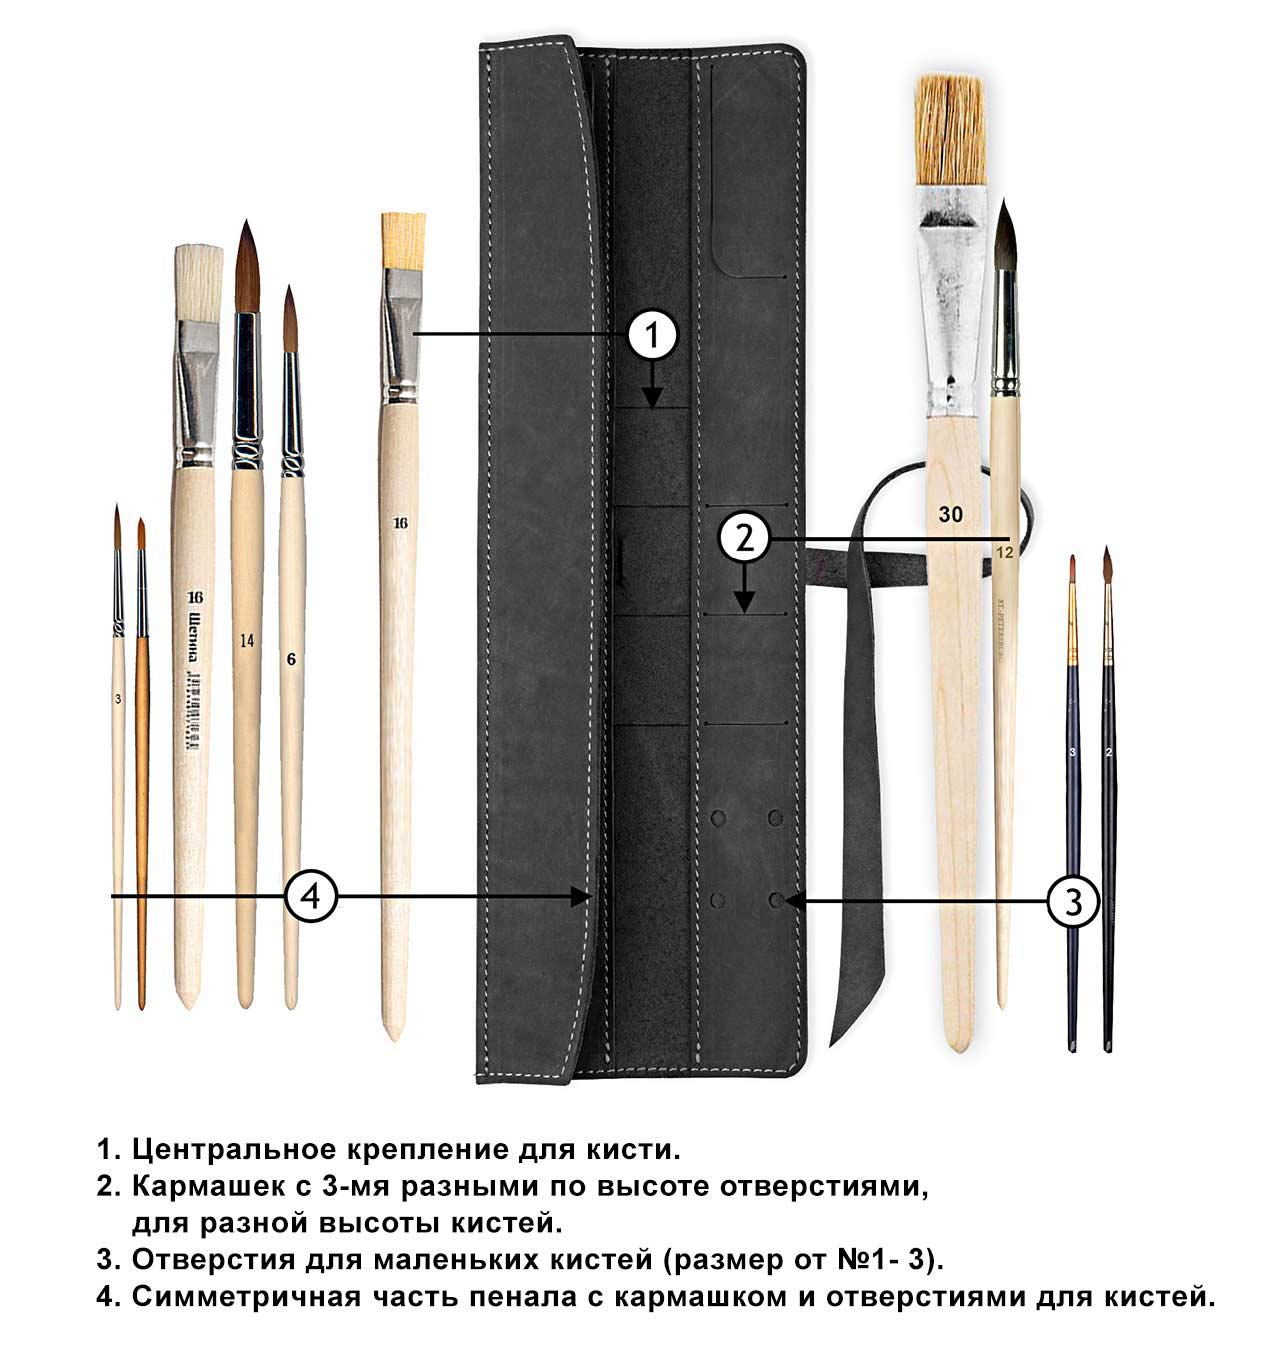 Пенал для кистей Artskill Brush mini коричневый